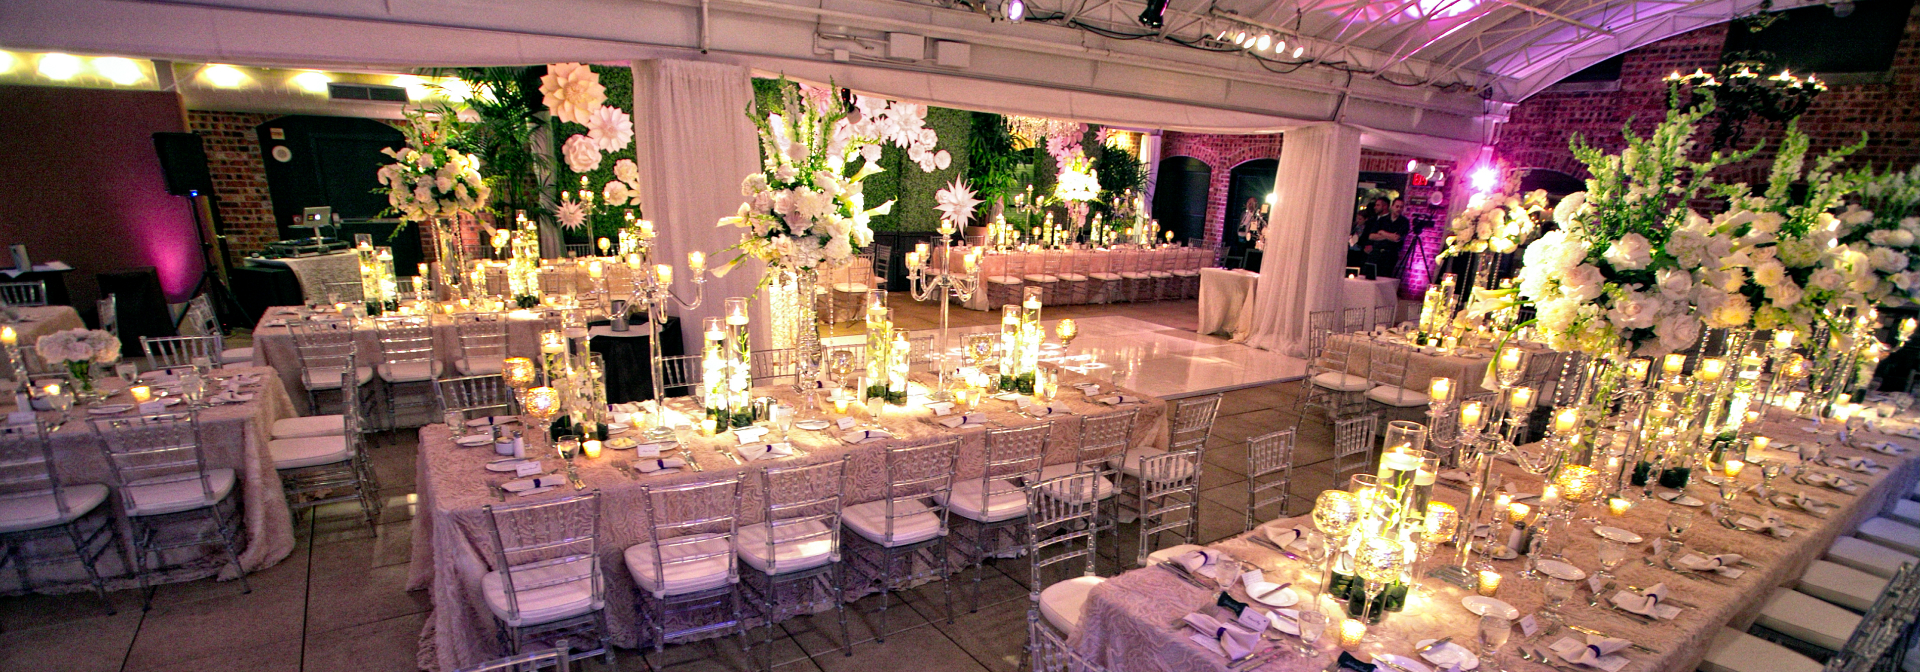 The Sam Houston, Curio Collection by Hilton is ideal for weddings, corporate retreats and other special events